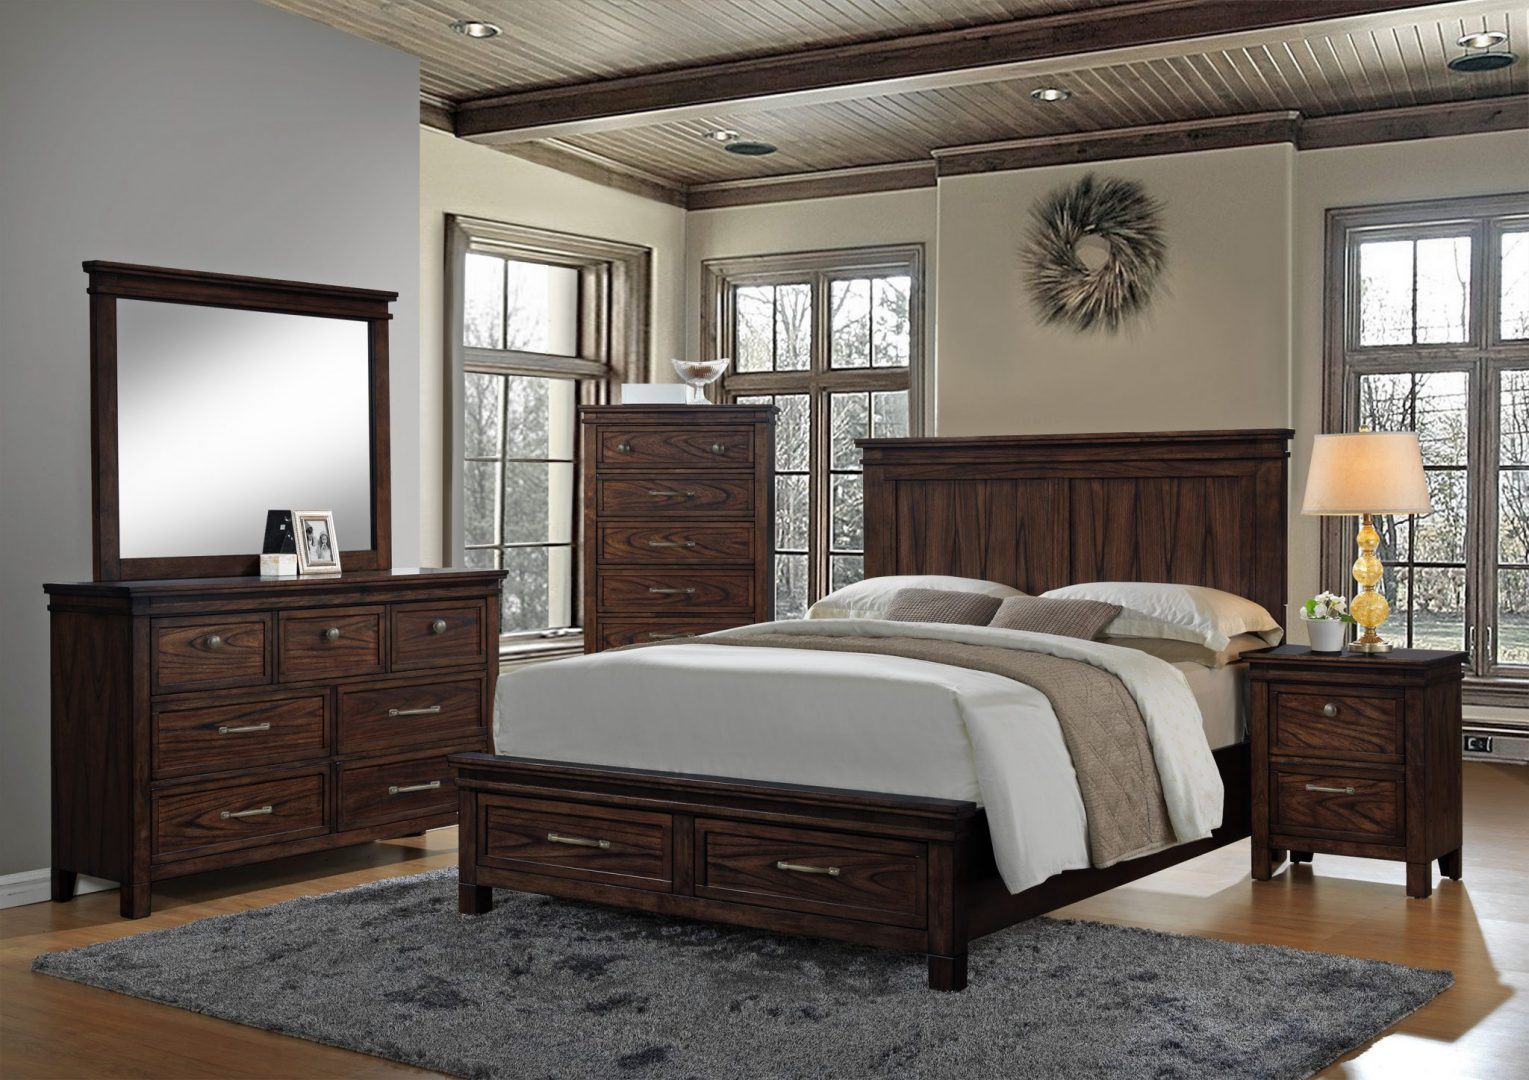 Specials Home Express Furniture We Are Your Trusted